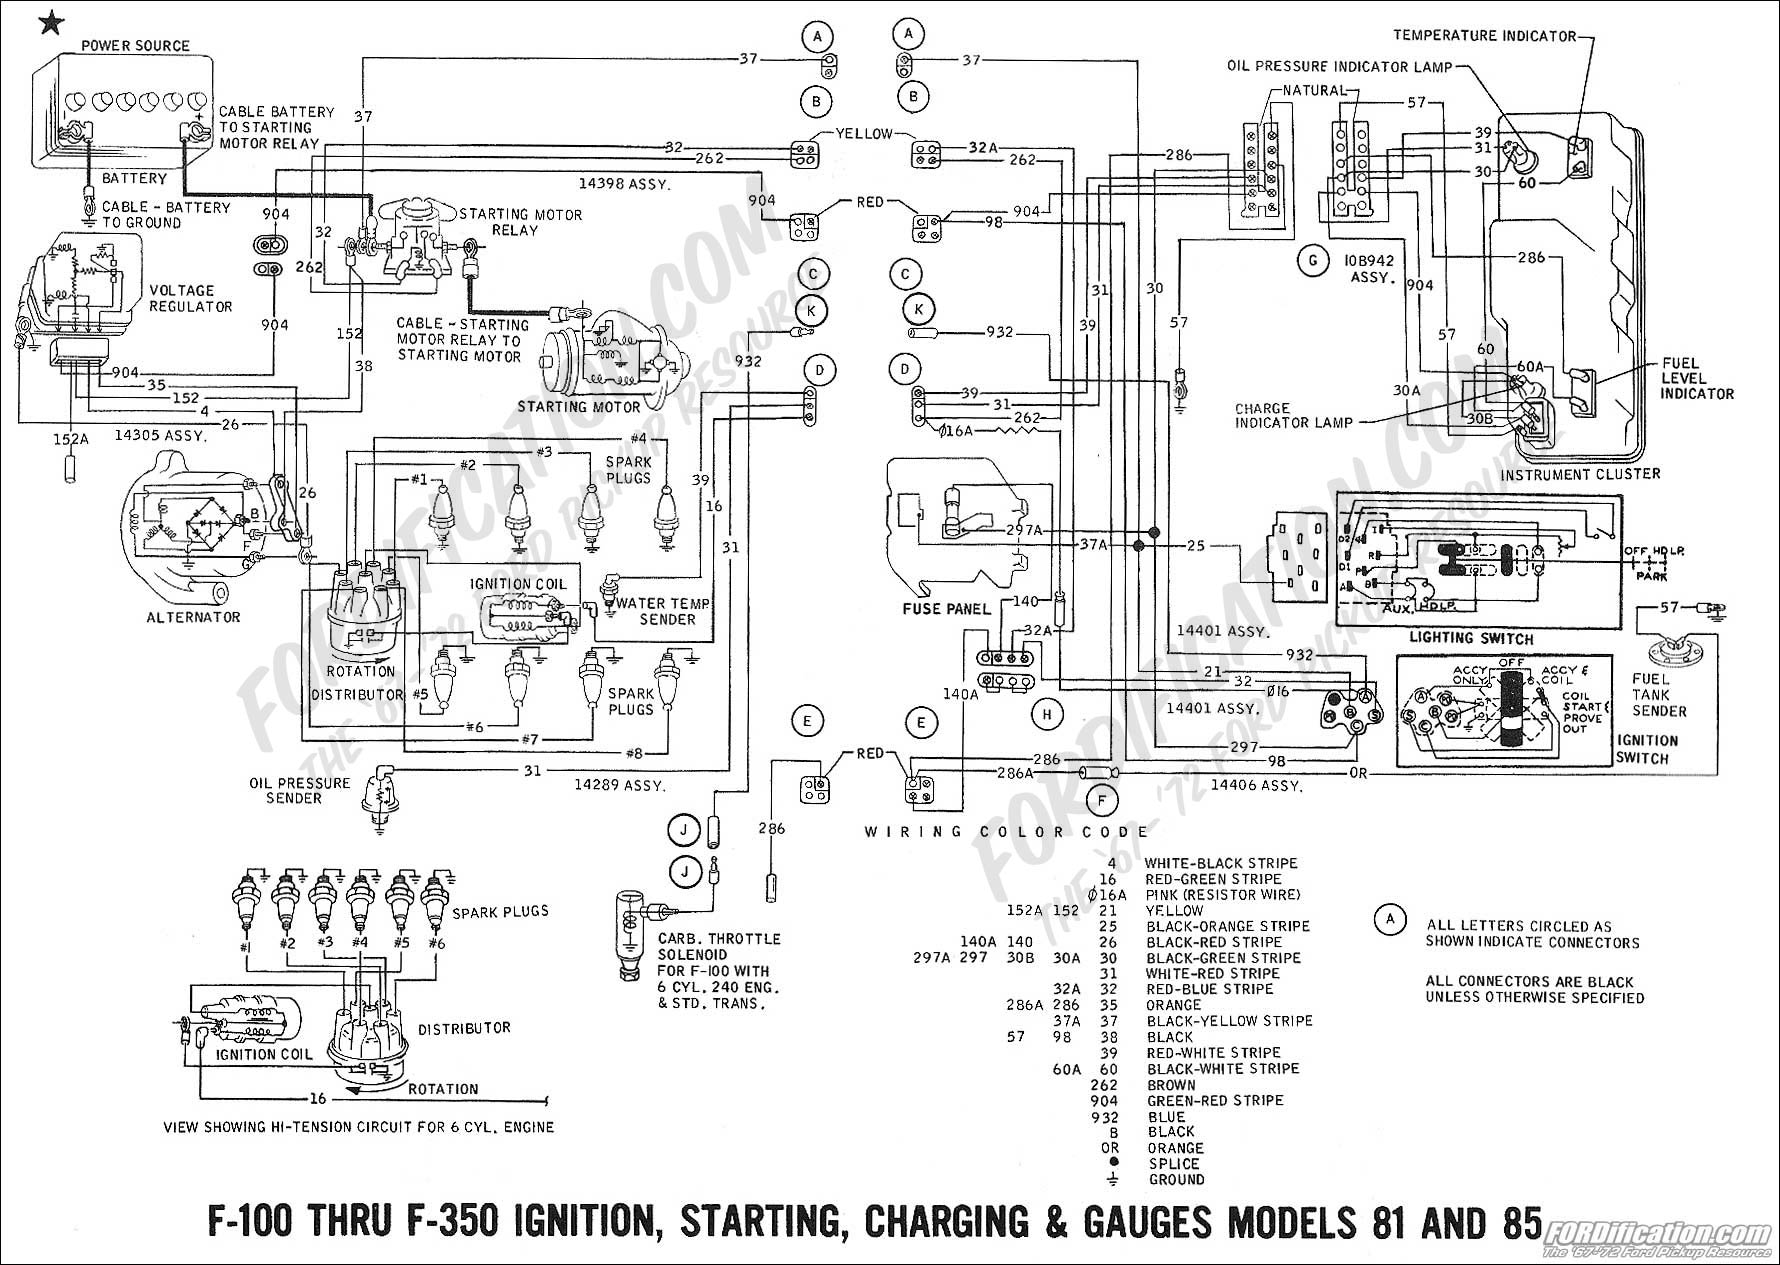 1973 chevy truck distributor wiring diagram